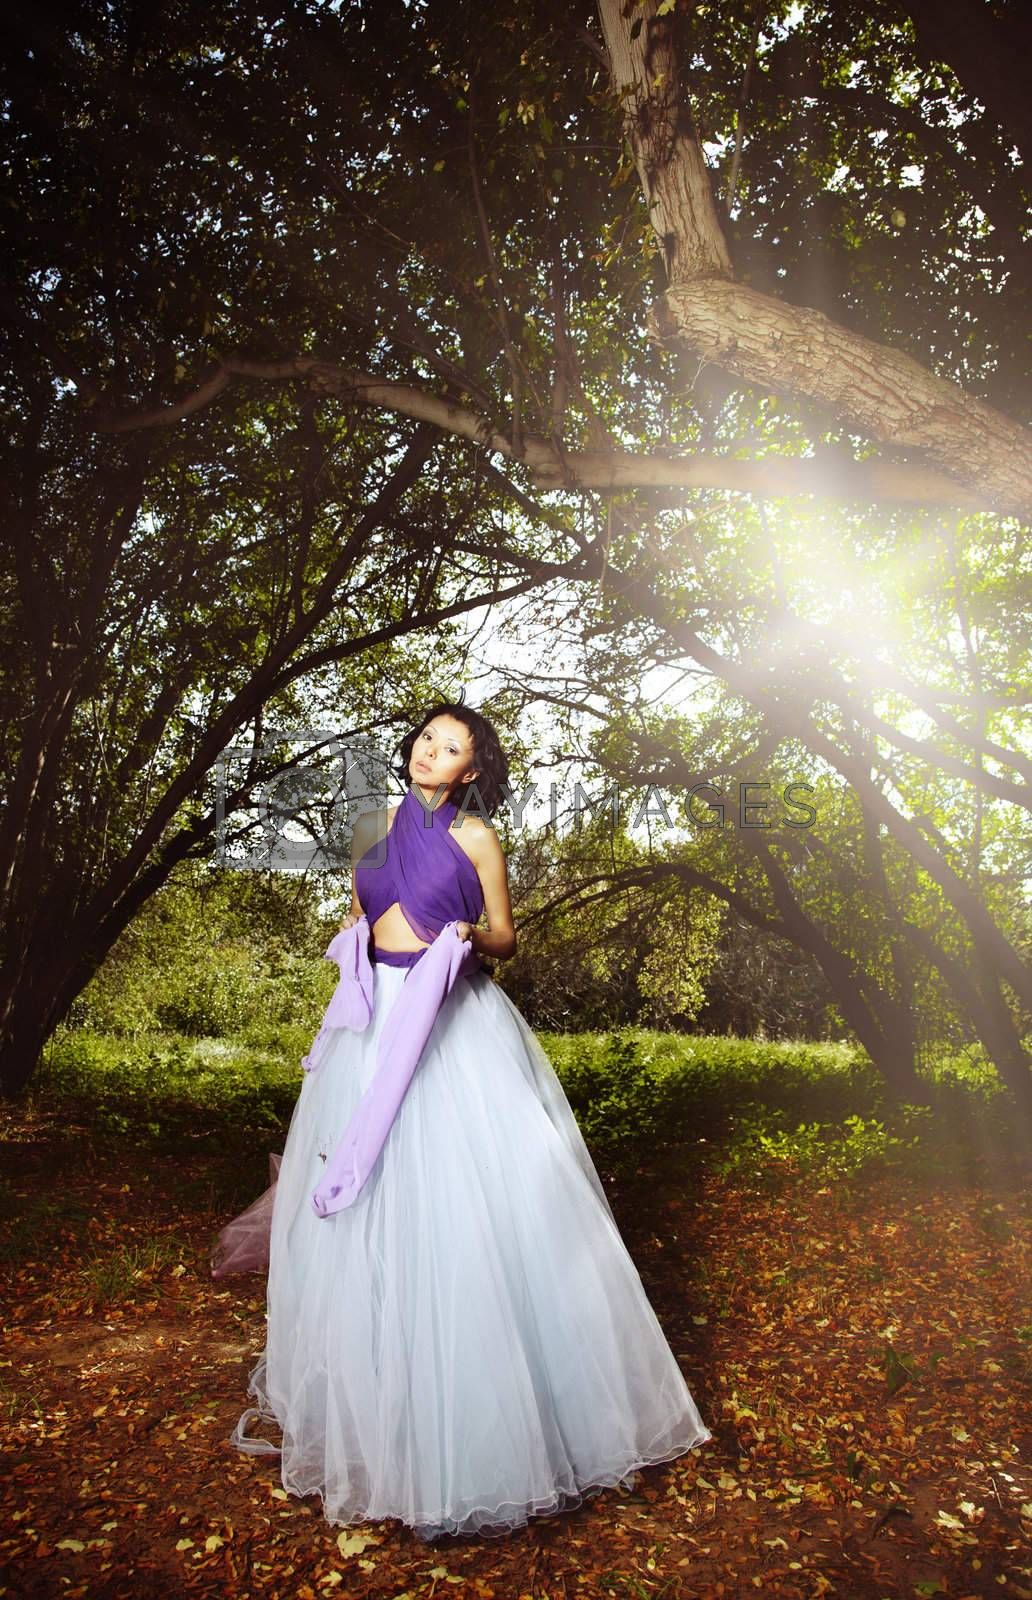 Elegant lady in the fairy autumn forest with sunlight at the background